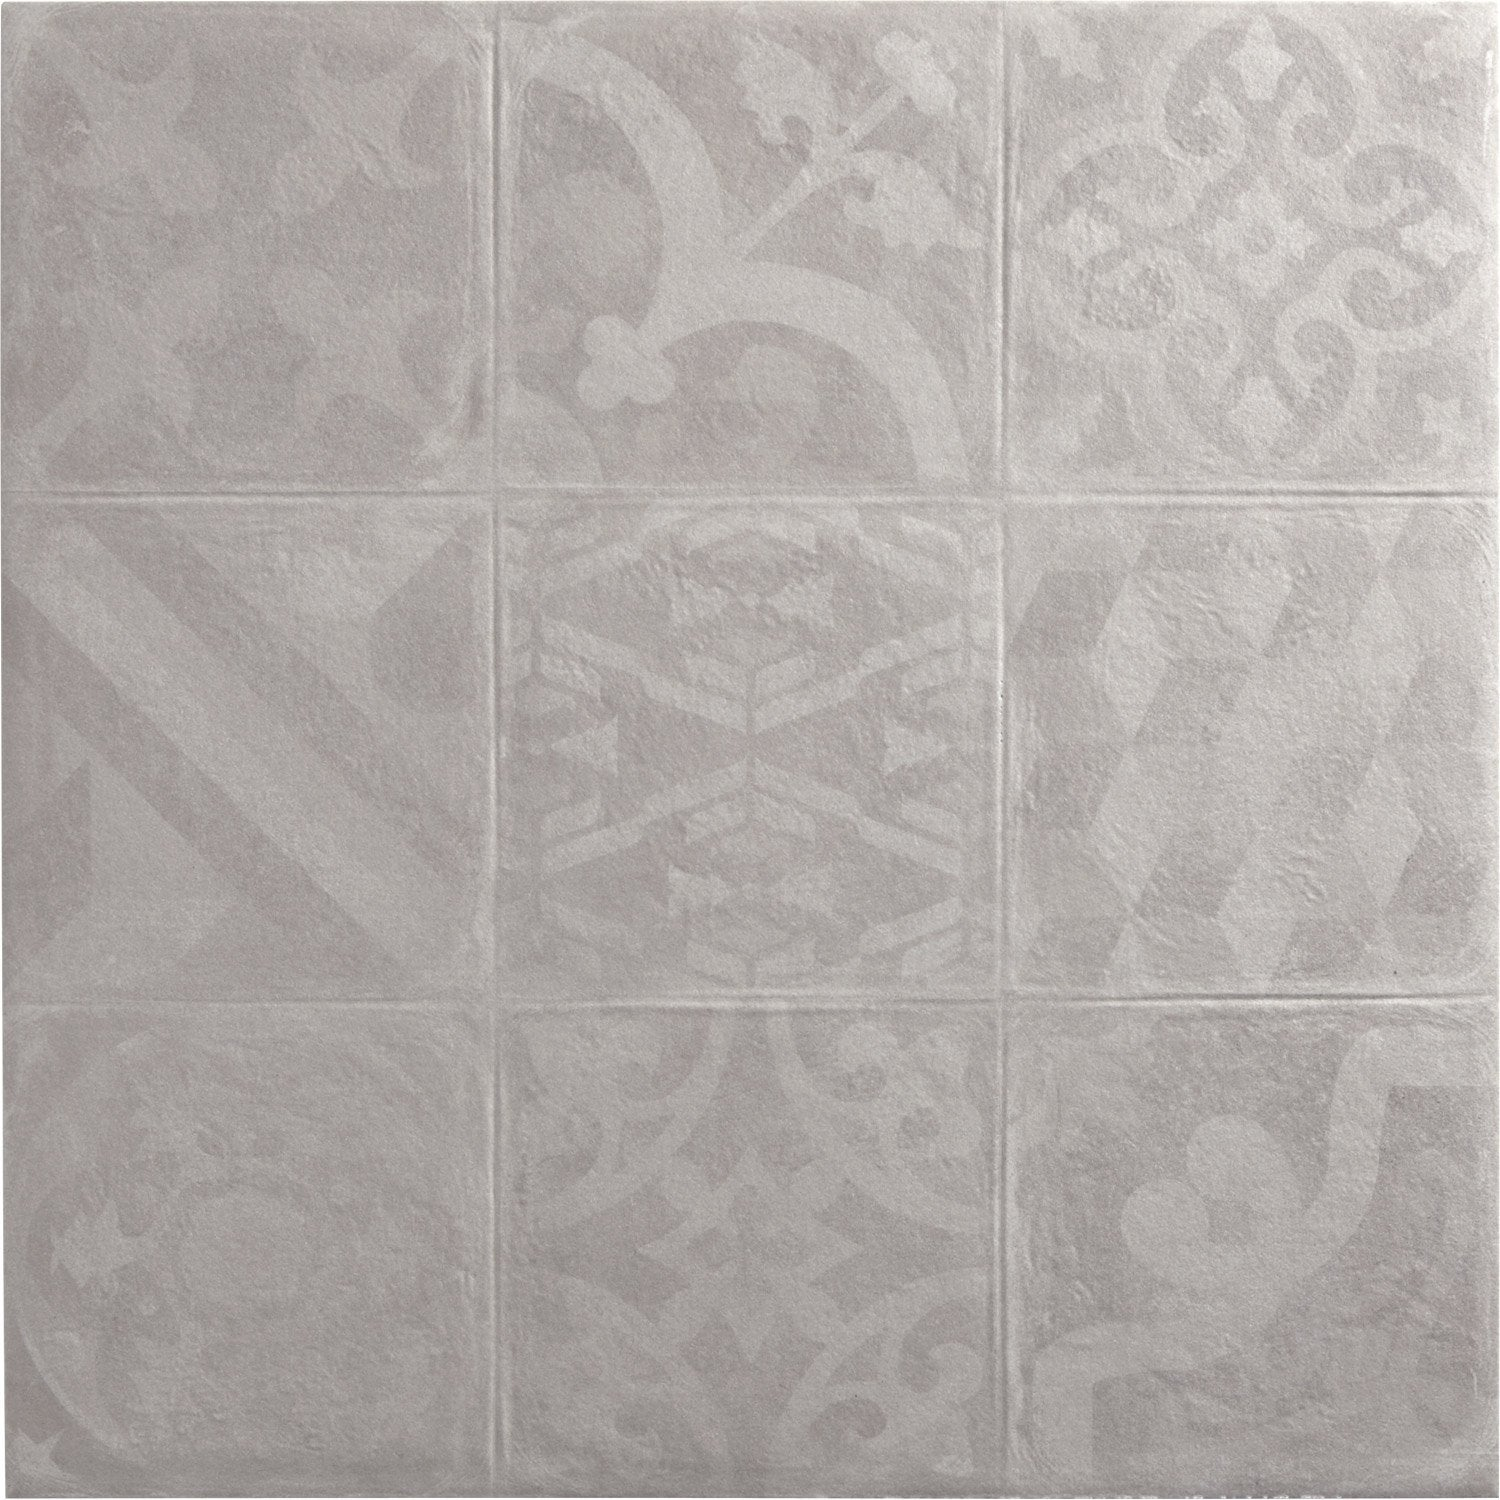 Carrelage design carrelage effet ciment moderne design for Carrelage effet beton